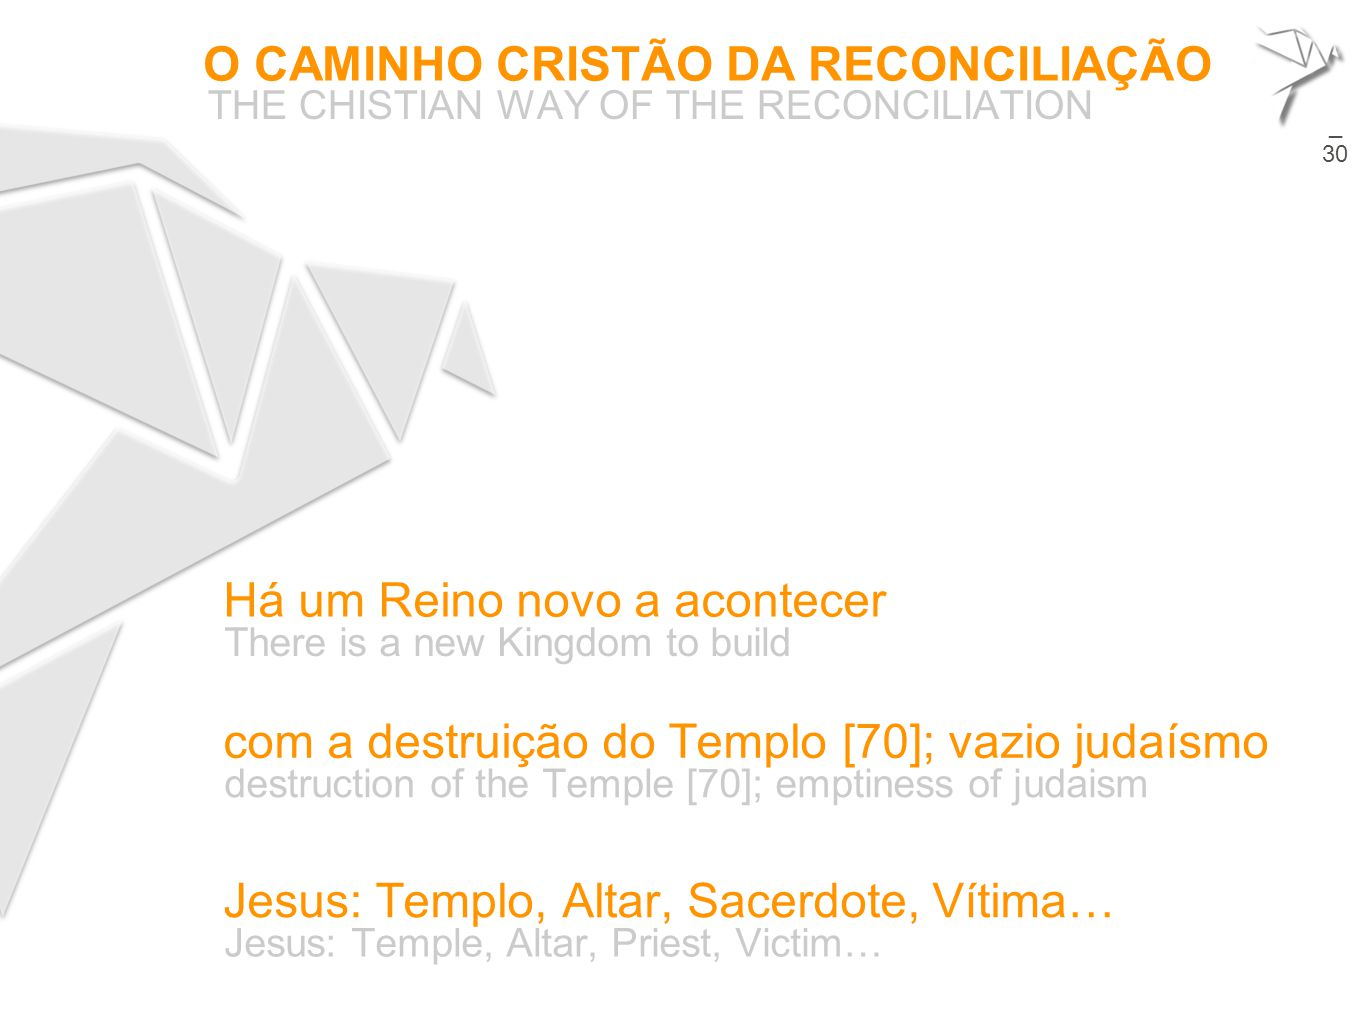 O CAMINHO CRISTÃO DA RECONCILIAÇÃO THE CHISTIAN WAY OF THE RECONCILIATION 20 Há um Reino novo a acontecer There is a new Kingdom to build  com a dest